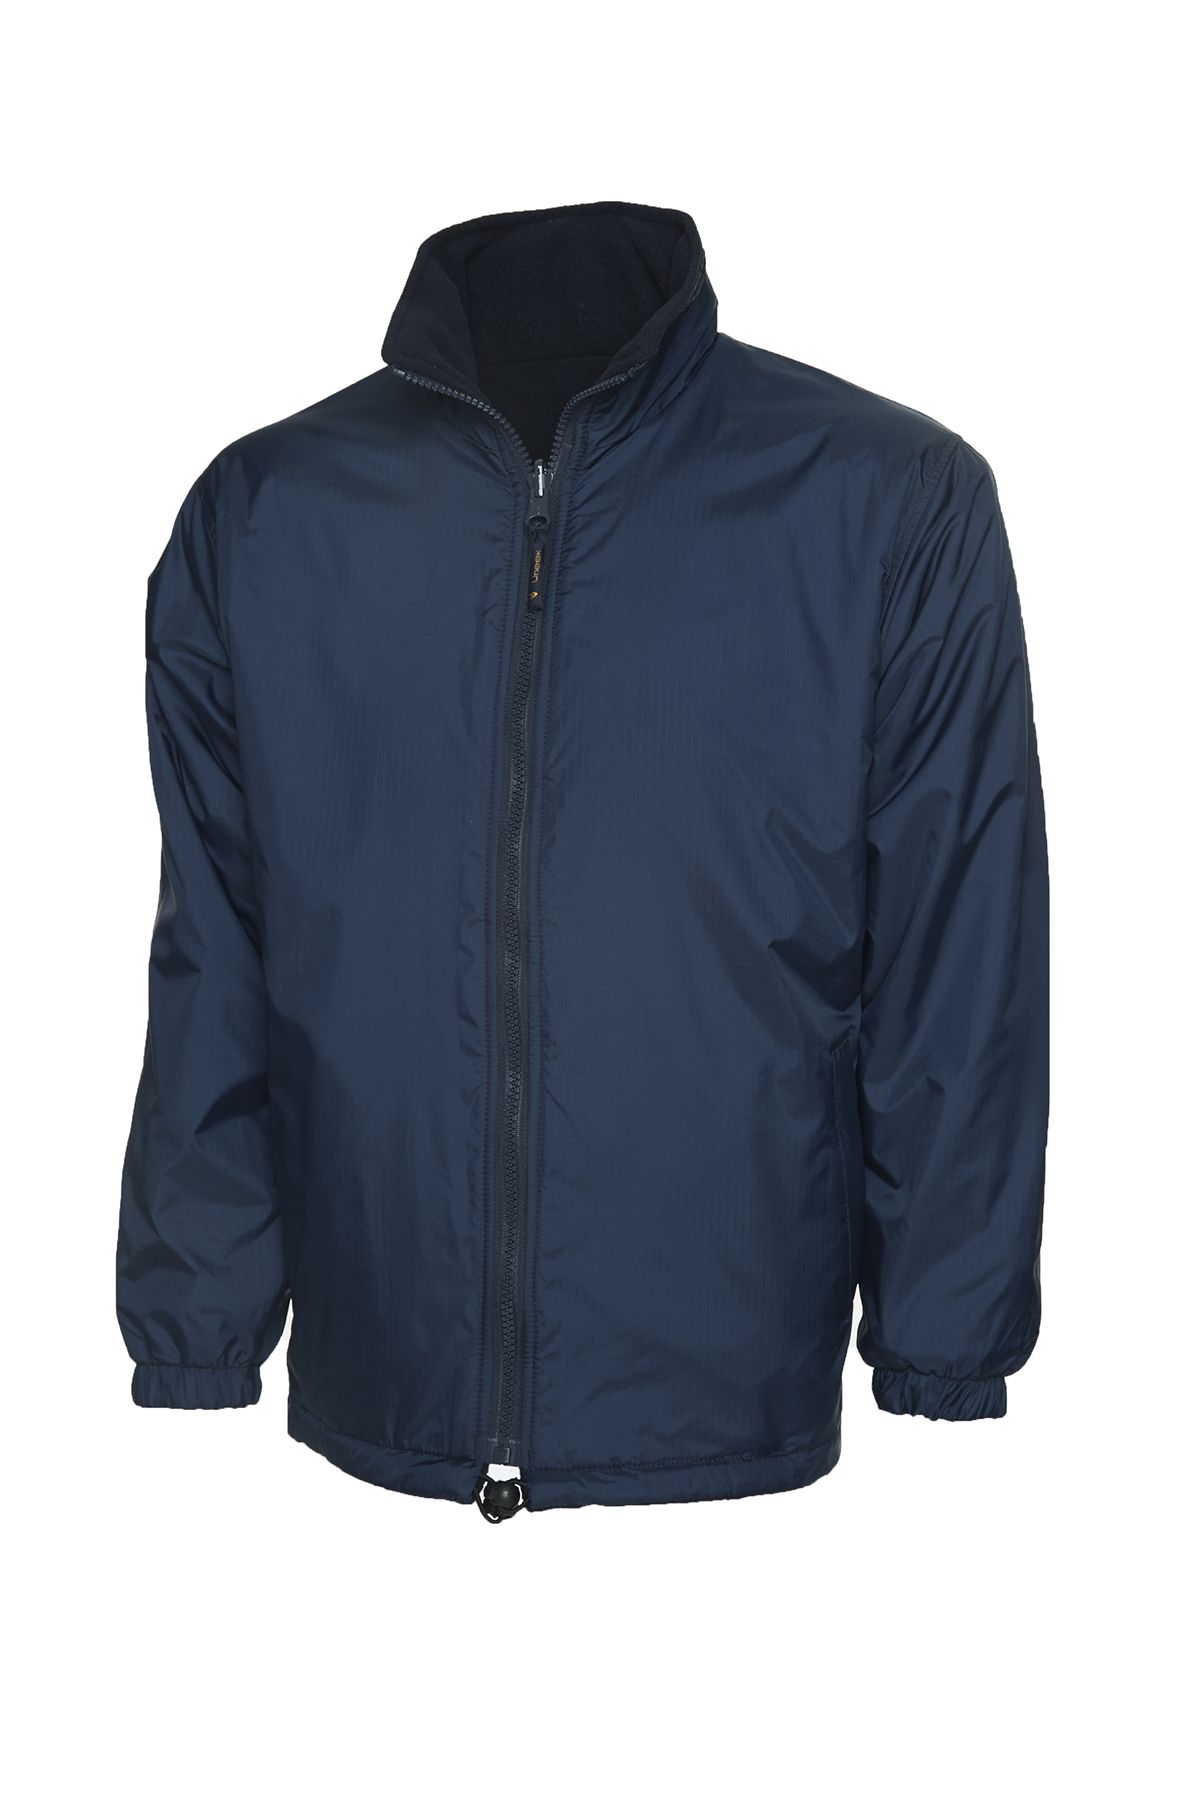 UNEEK UC605 PREMIUM REVERSIBLE JACKET